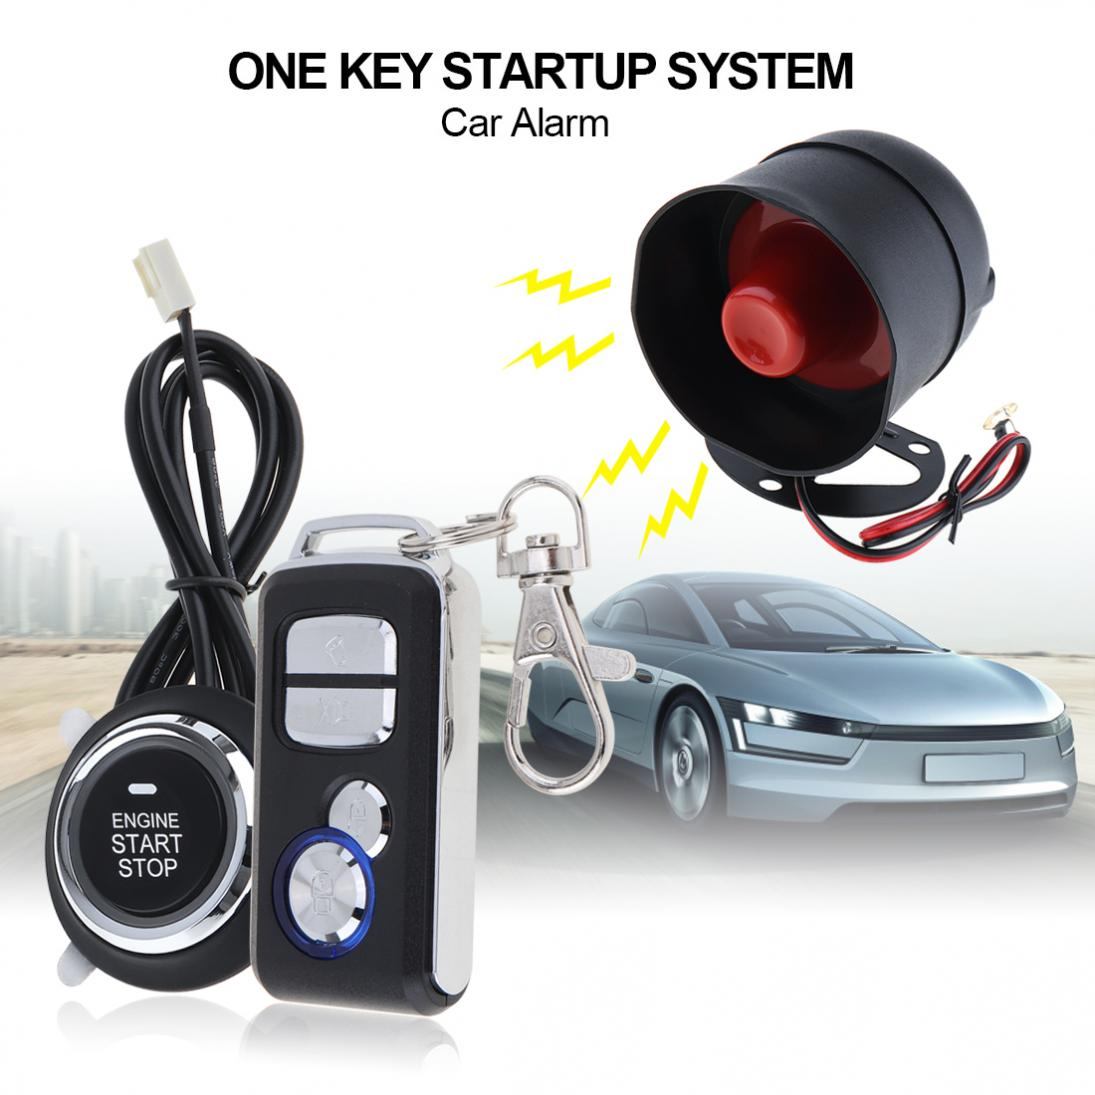 12V Car Alarm System Remote Start Stop Engine System with Auto Central Lock and Keyless Entry 5A with Key 1 smart haa flip key pke car alarm system push start remote start stop engine auto central door lock with shock sensor